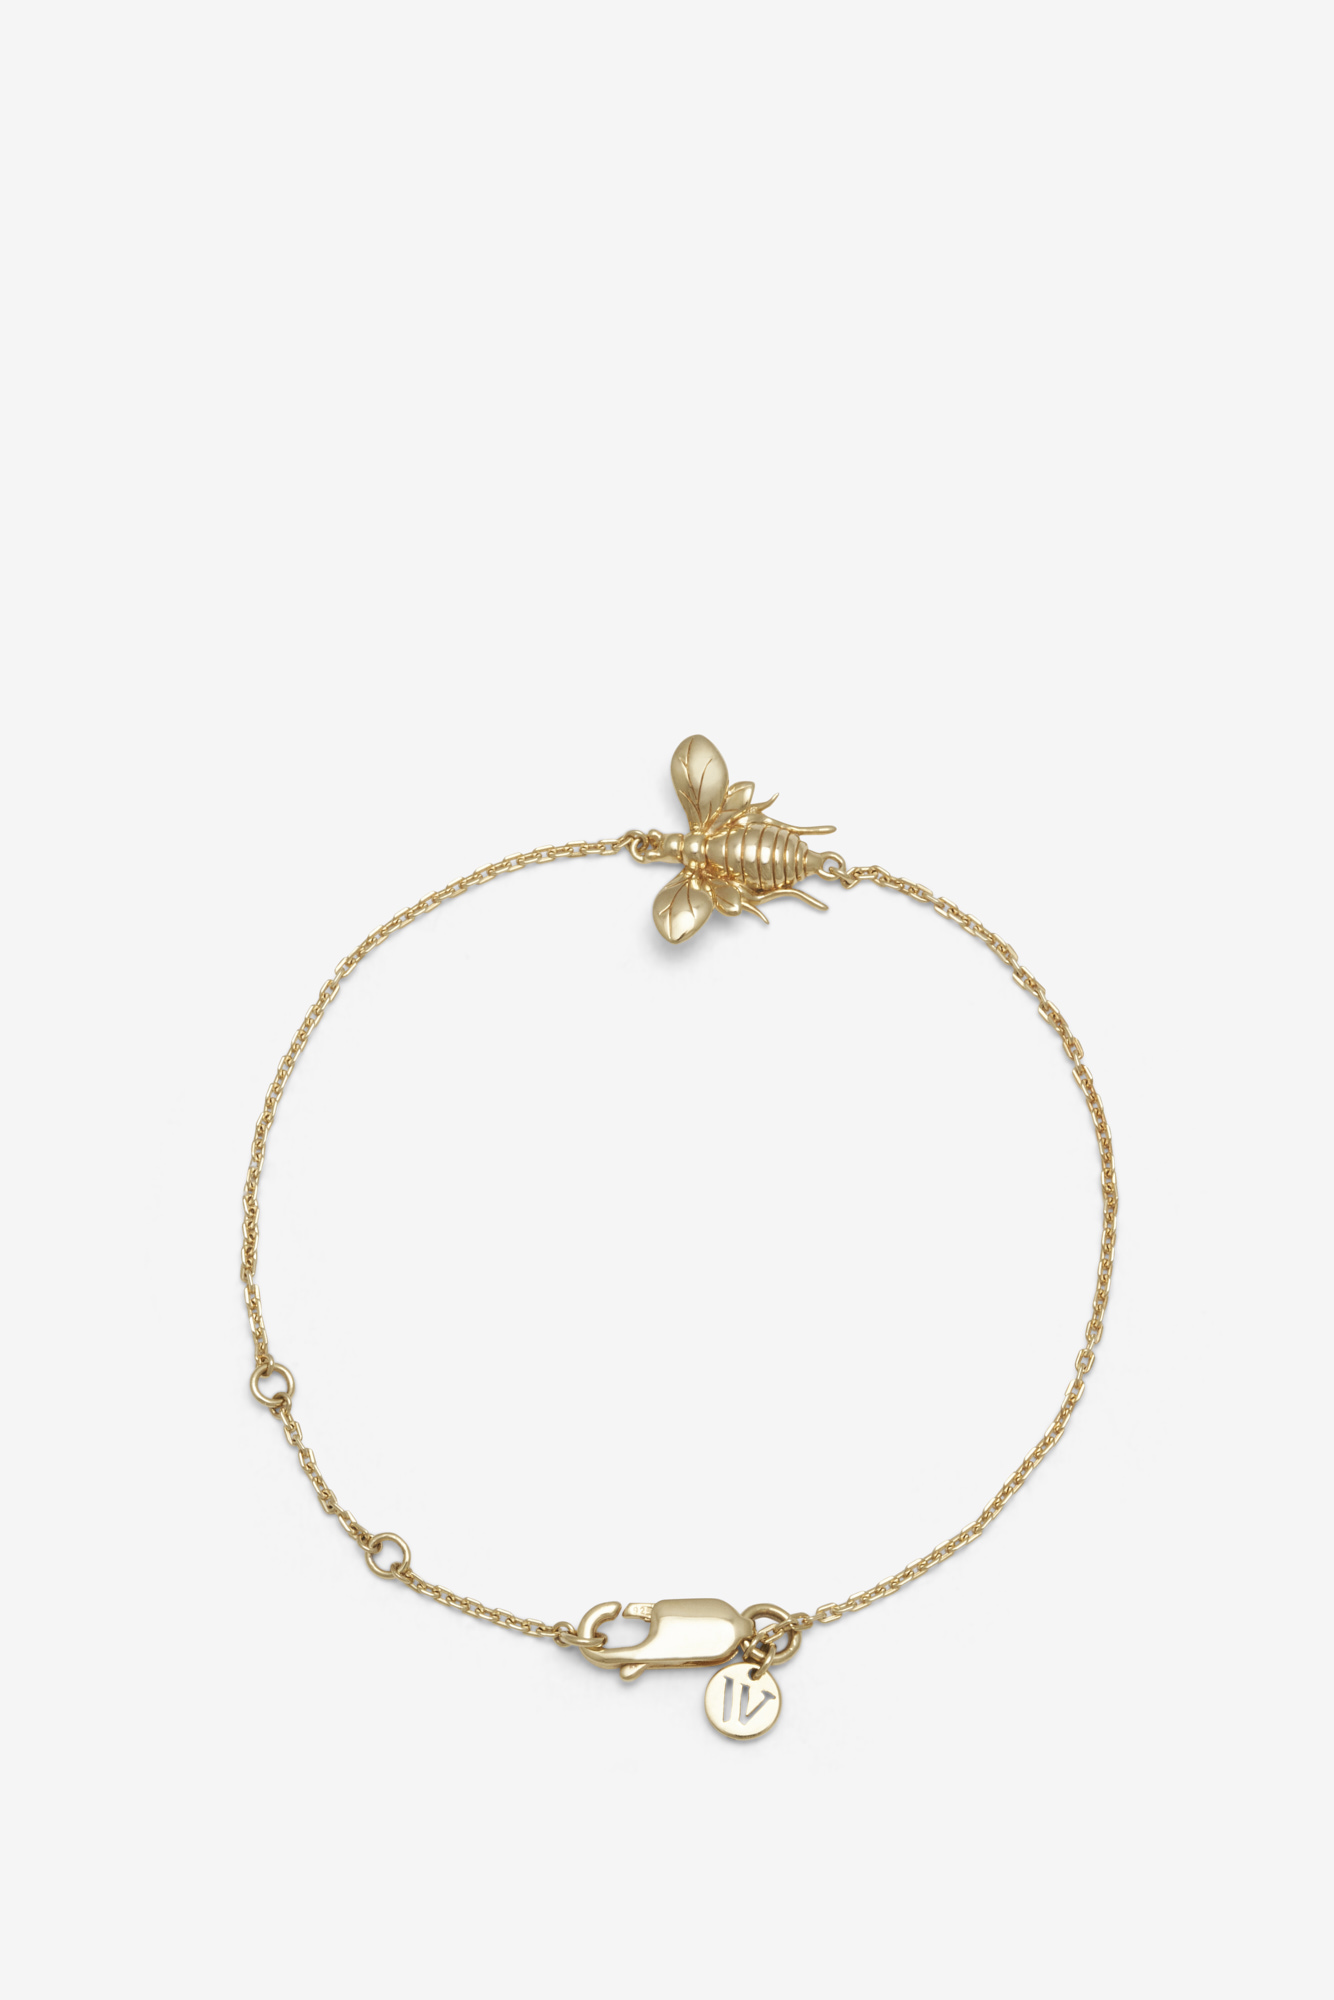 19-03-5-1-004-113-12_Bee Bracelet_Gold Plated_03